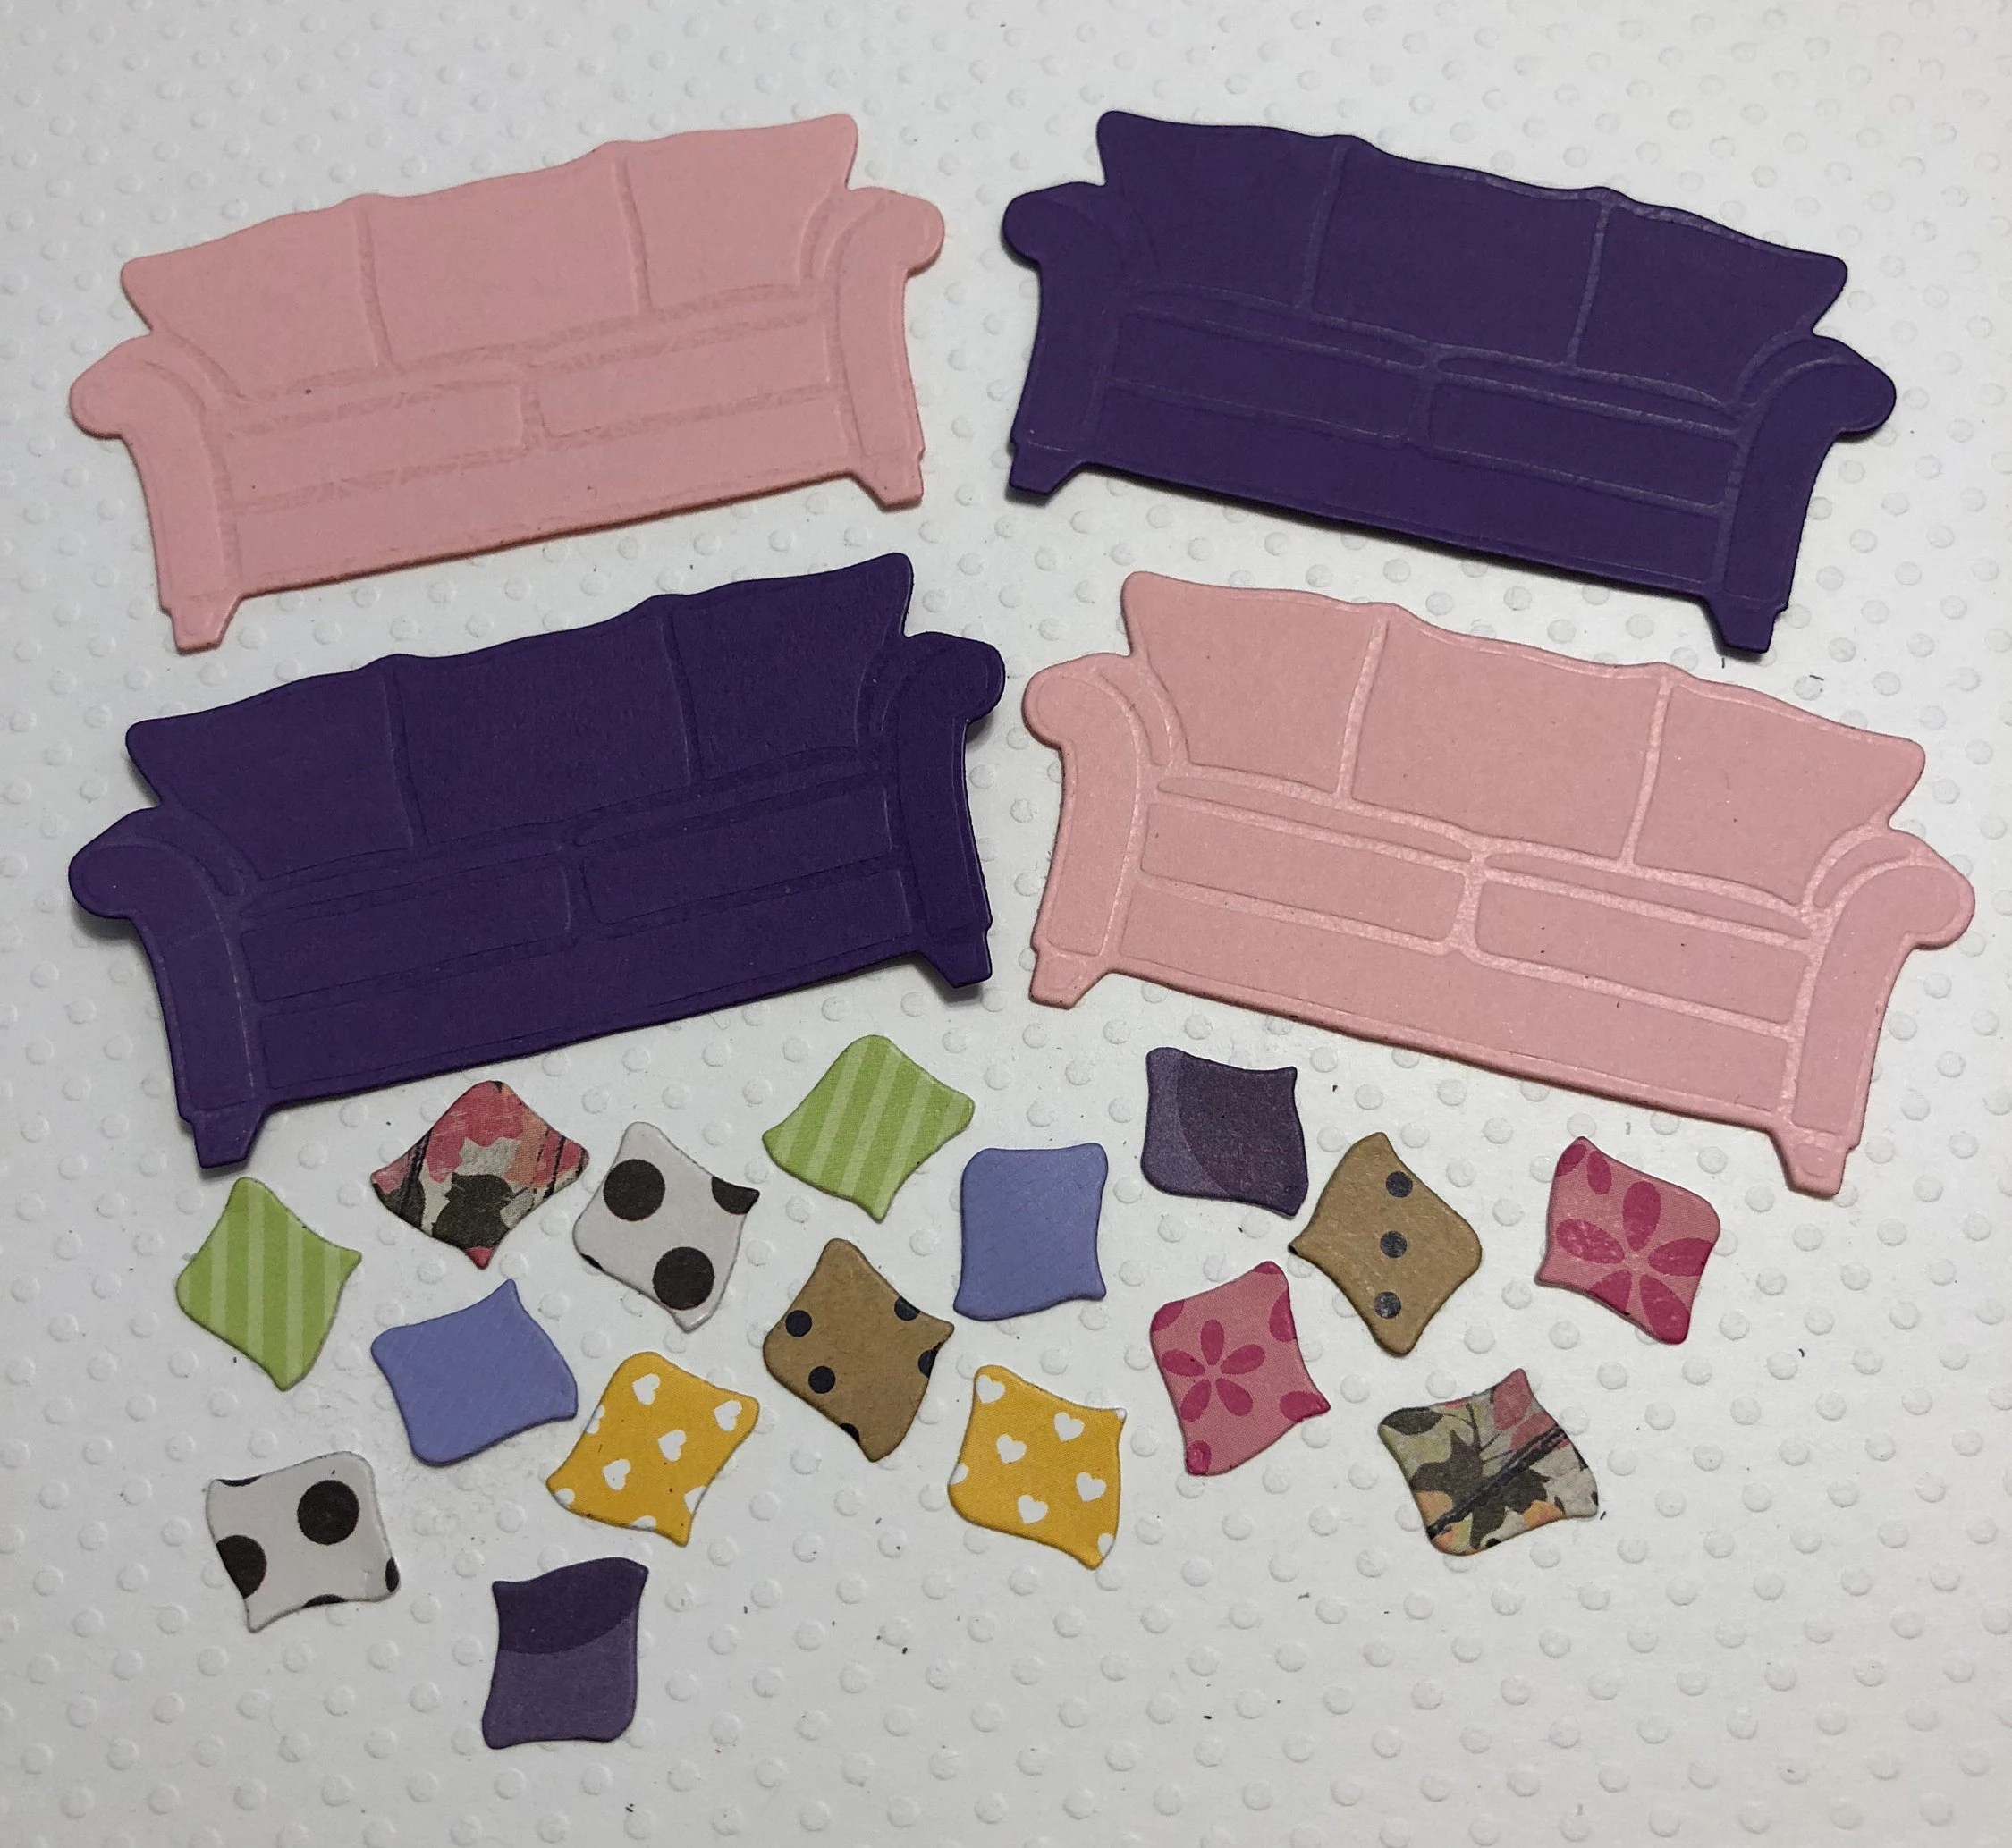 Couches 4 4 Couches 16 Pillows Handmade Pink Purple